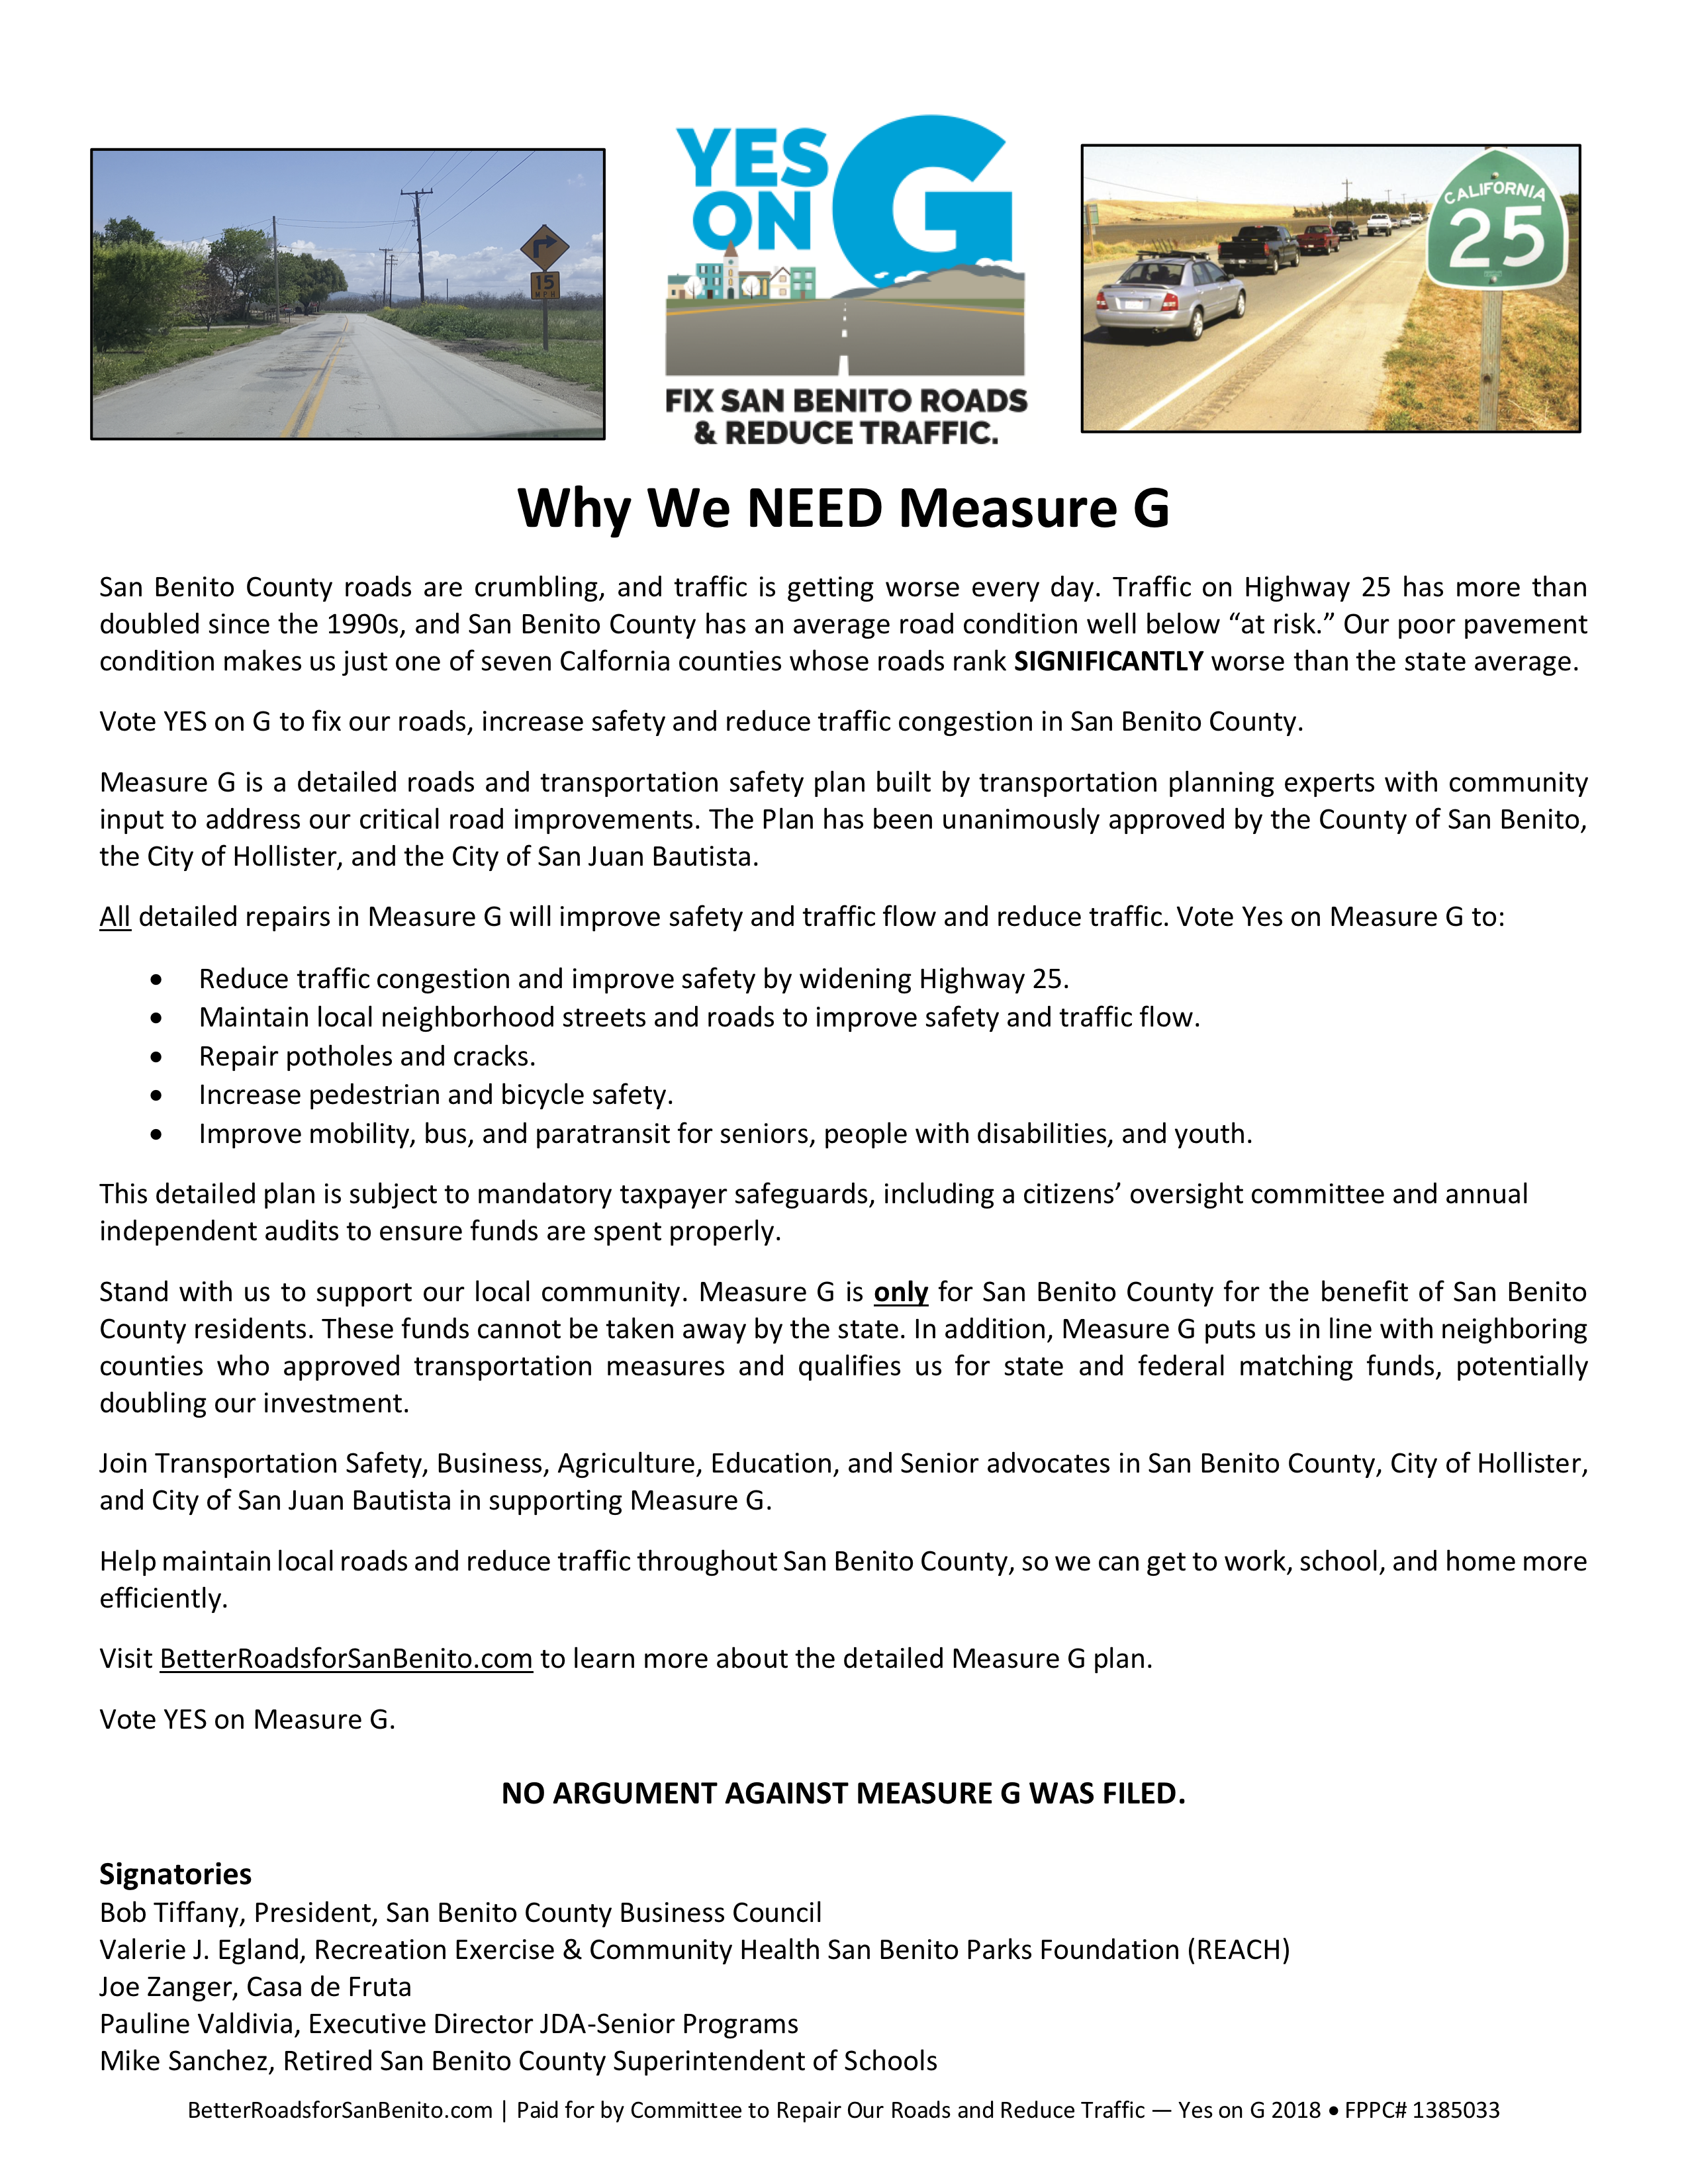 Why_We_Need_Measure_G_Ordinance_Guide_092618_2a.png